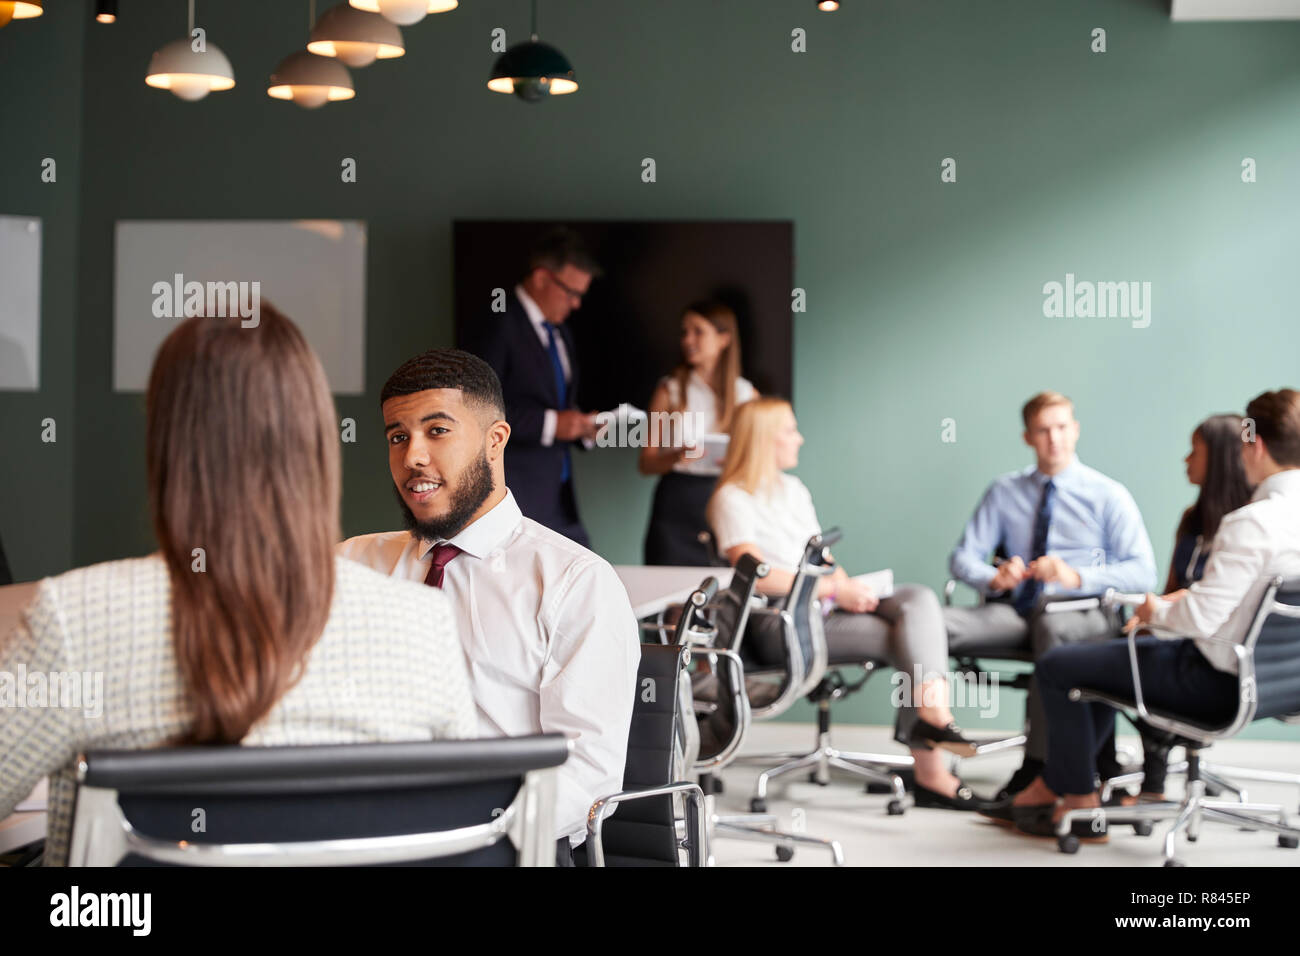 Businesswoman And Businessman Collaborating On Task Together At Graduate Recruitment Assessment Day - Stock Image